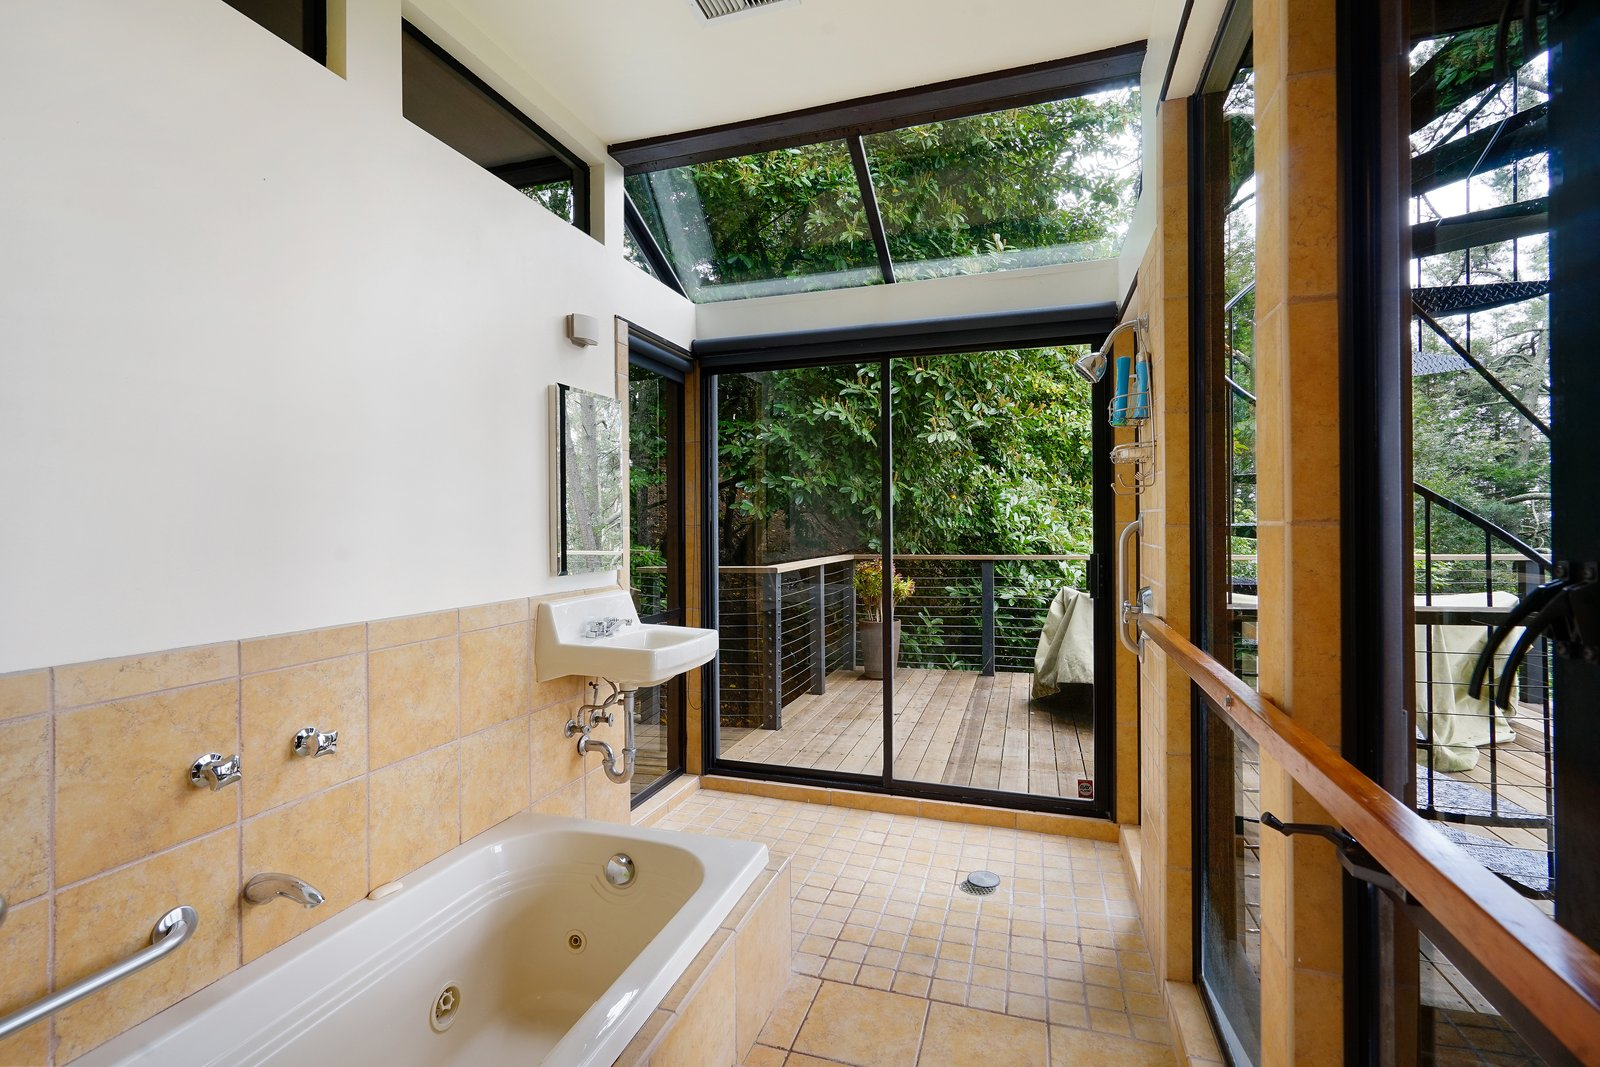 Bath Room, Drop In Tub, Ceramic Tile Floor, Ceramic Tile Wall, Wall Lighting, and Wall Mount Sink T  Photo 13 of 17 in This Knockout Midcentury in the Bay Area Will Run You $1.9M